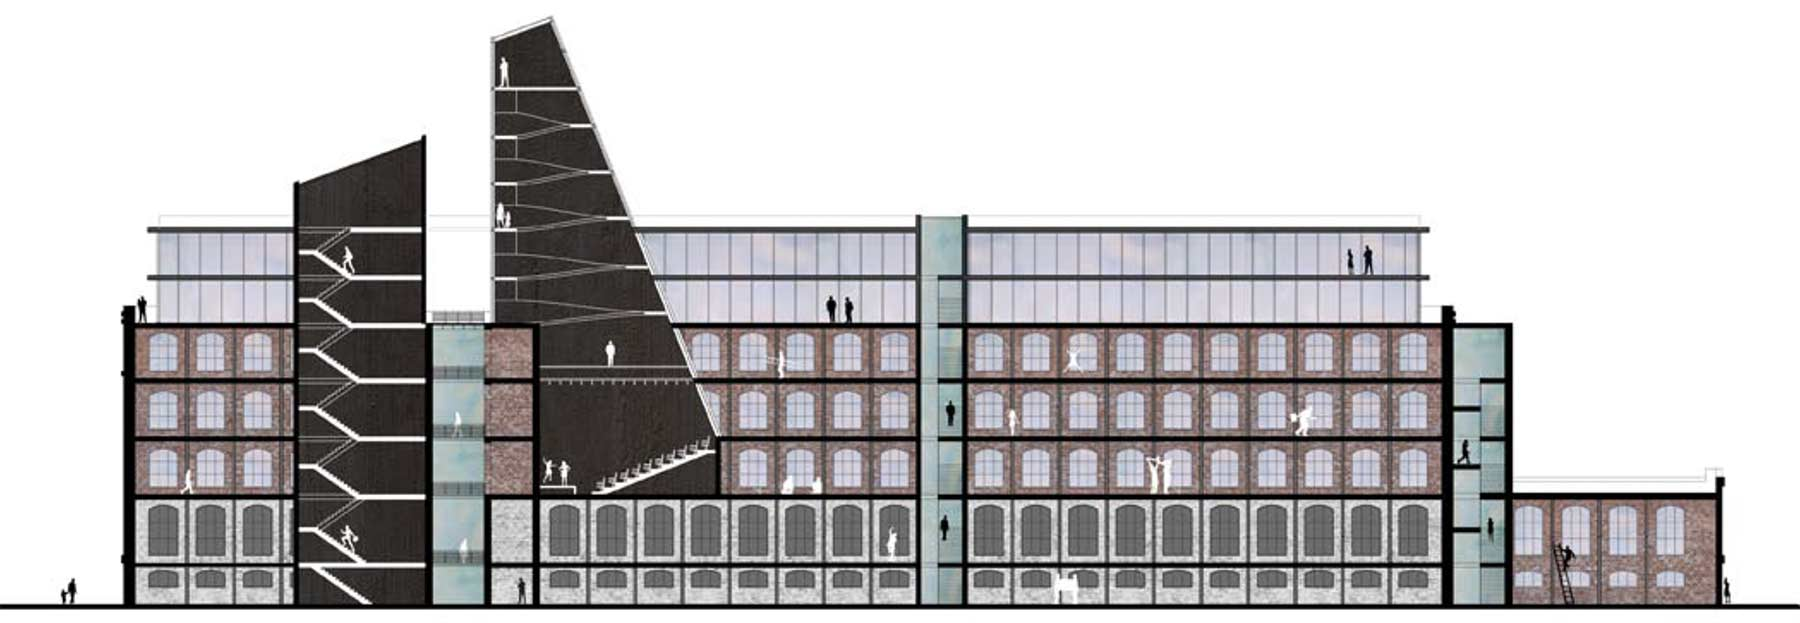 mill-no1-plans-01